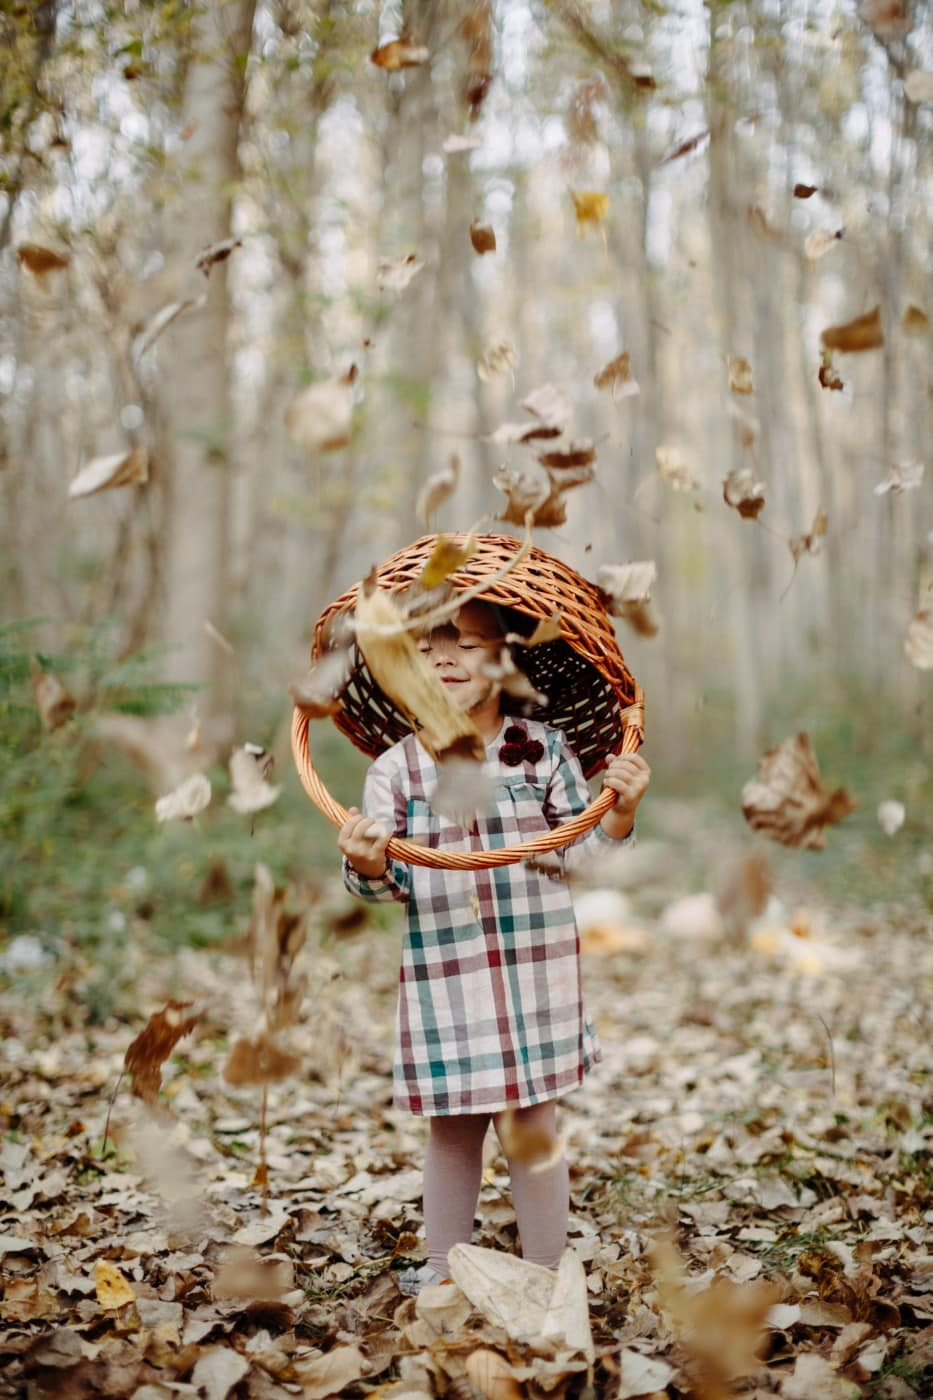 autumn season, yellowish brown, leaves, child, forest, wicker basket, happiness, enjoyment, fun, nature